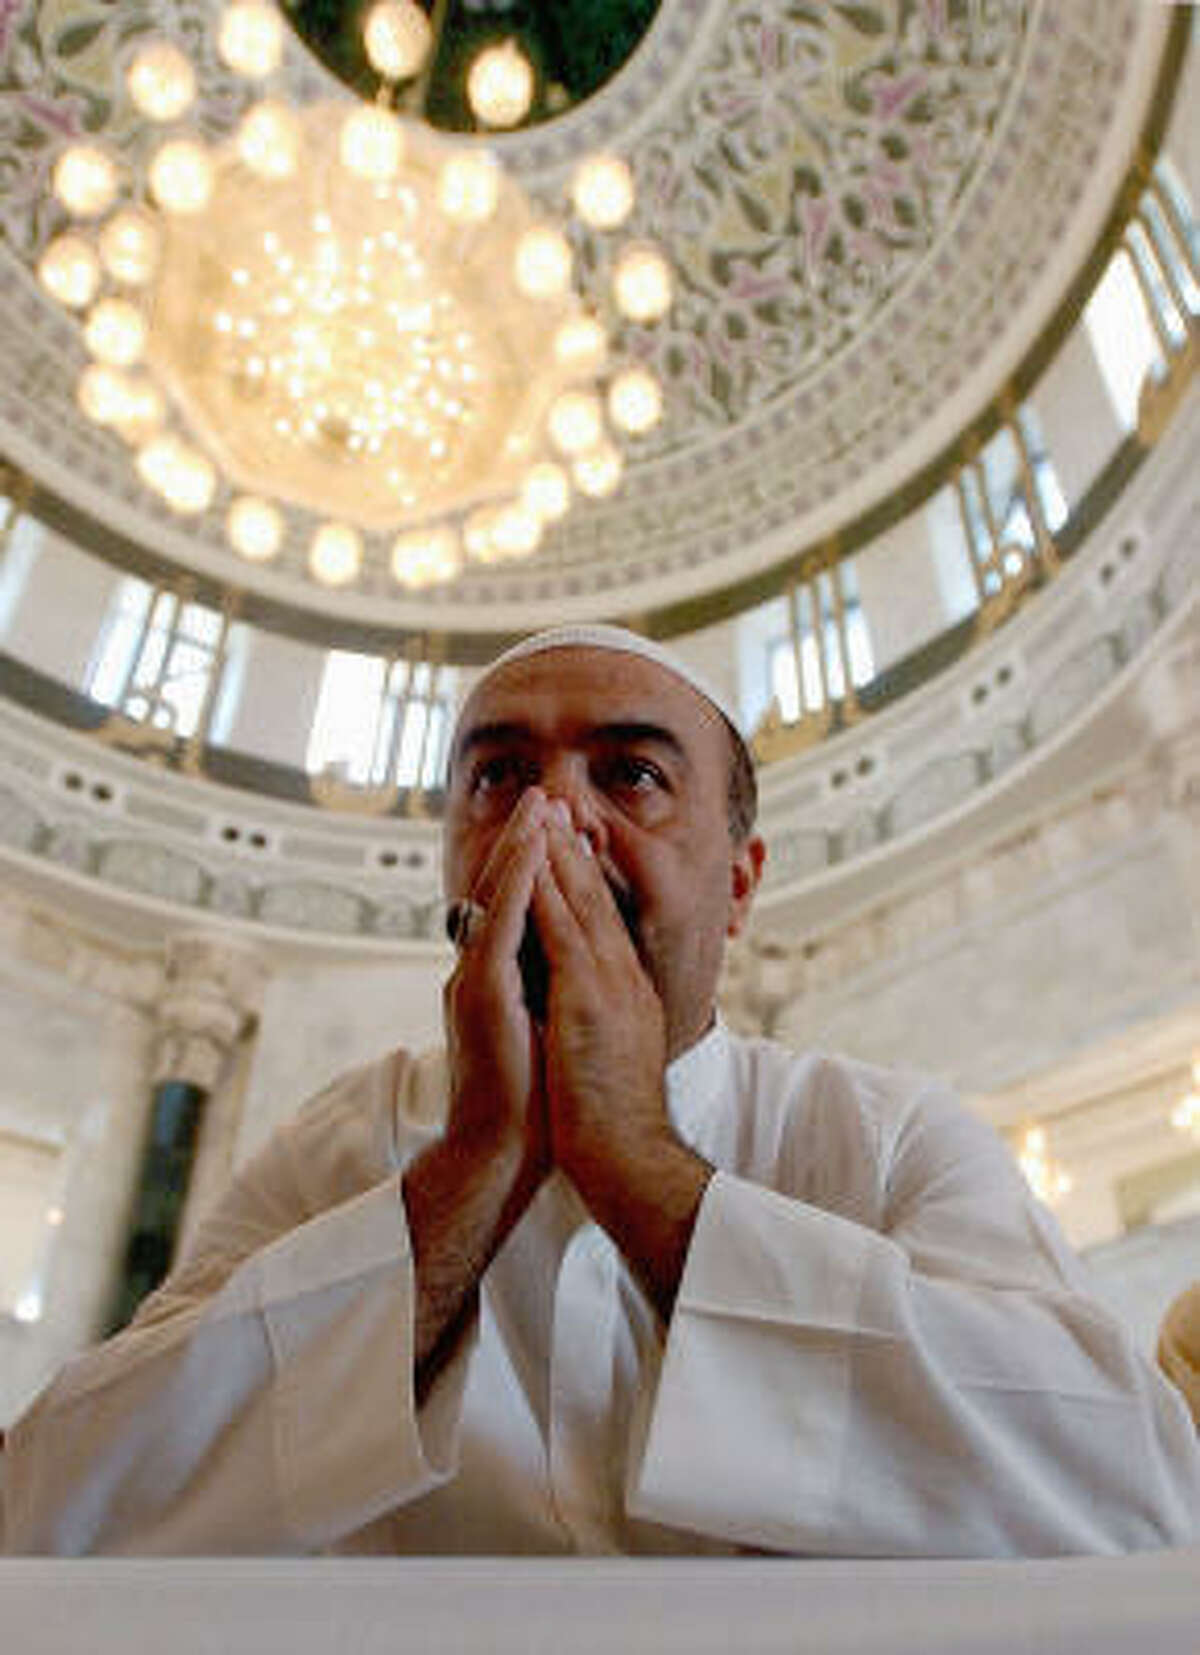 A Sunni Muslim says Friday noon prayers in a Baghdad mosque. All Muslims, whether Shia or Sunni, follow Islam's five basic tenets. The most basic is the belief in one God, known as Allah, and in Muhammad as his prophet.